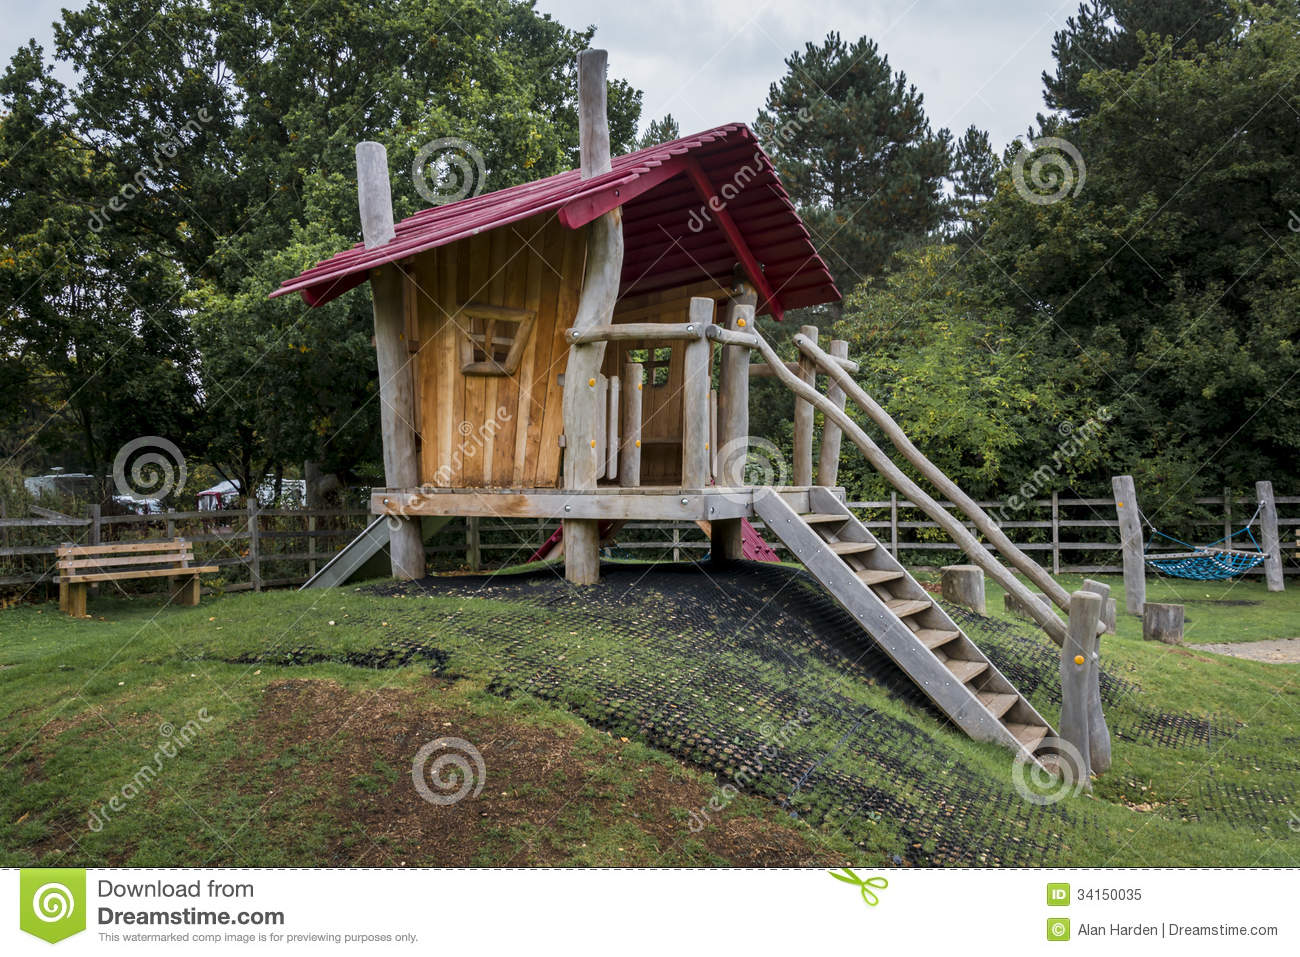 ... Childrens Wooden Playhouse Royalty Free Stock Photo - Image: 34150035